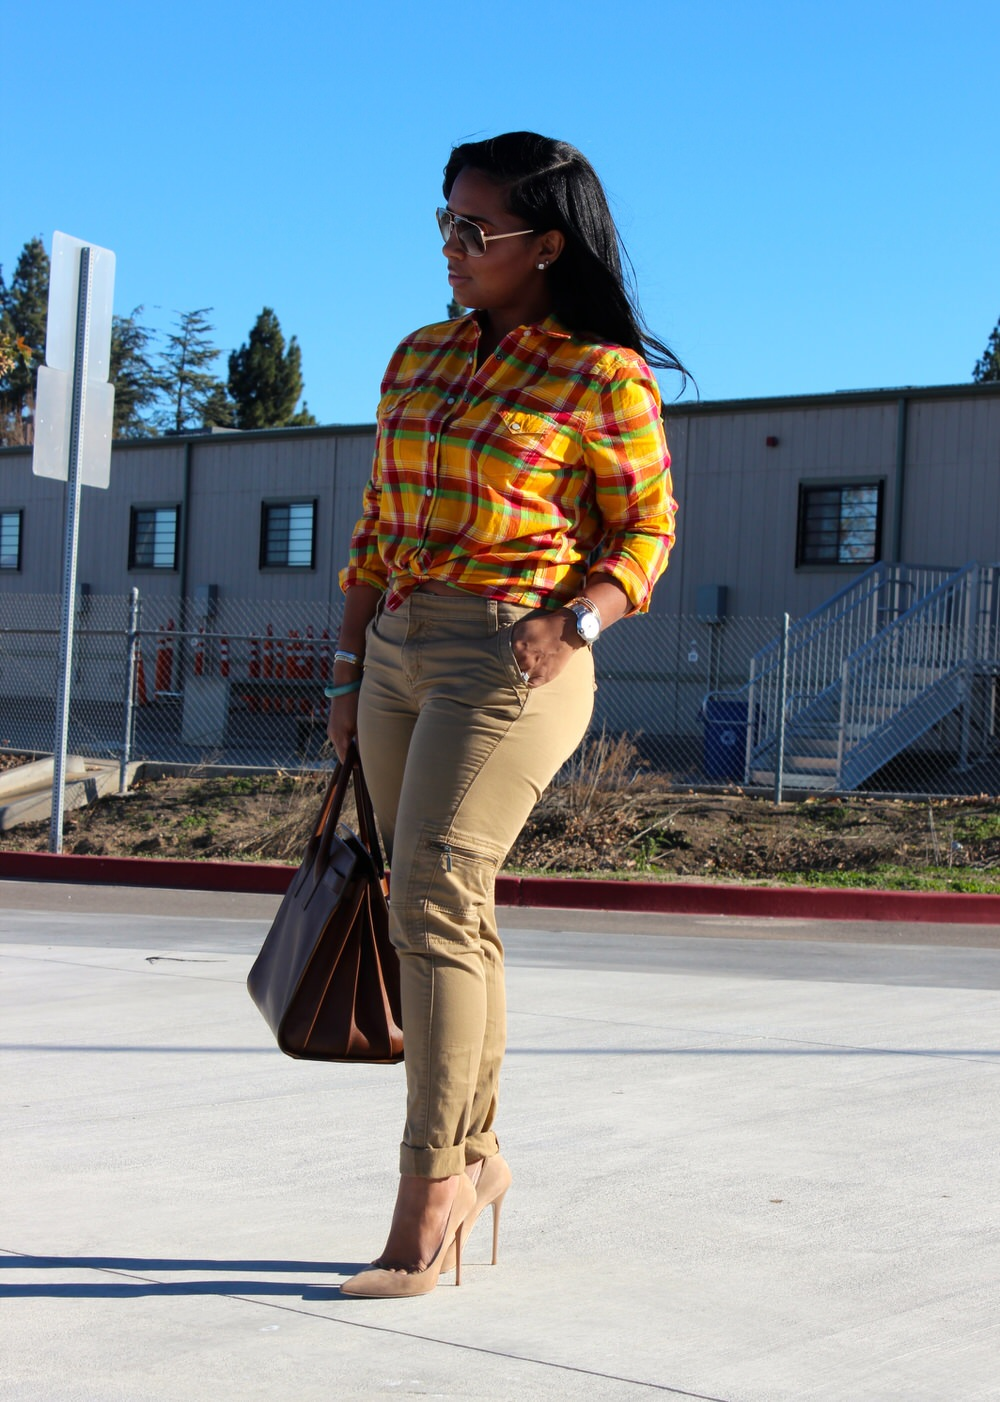 Cool Here Are A Few Essential Items Every Corporate Wardrobe Should Contain Women Must Have A Business Suit  Business Casual Attire Every Woman Should Have A Pair Of Black Business Slacks, A Pair Of Khaki Pants And Several Casual